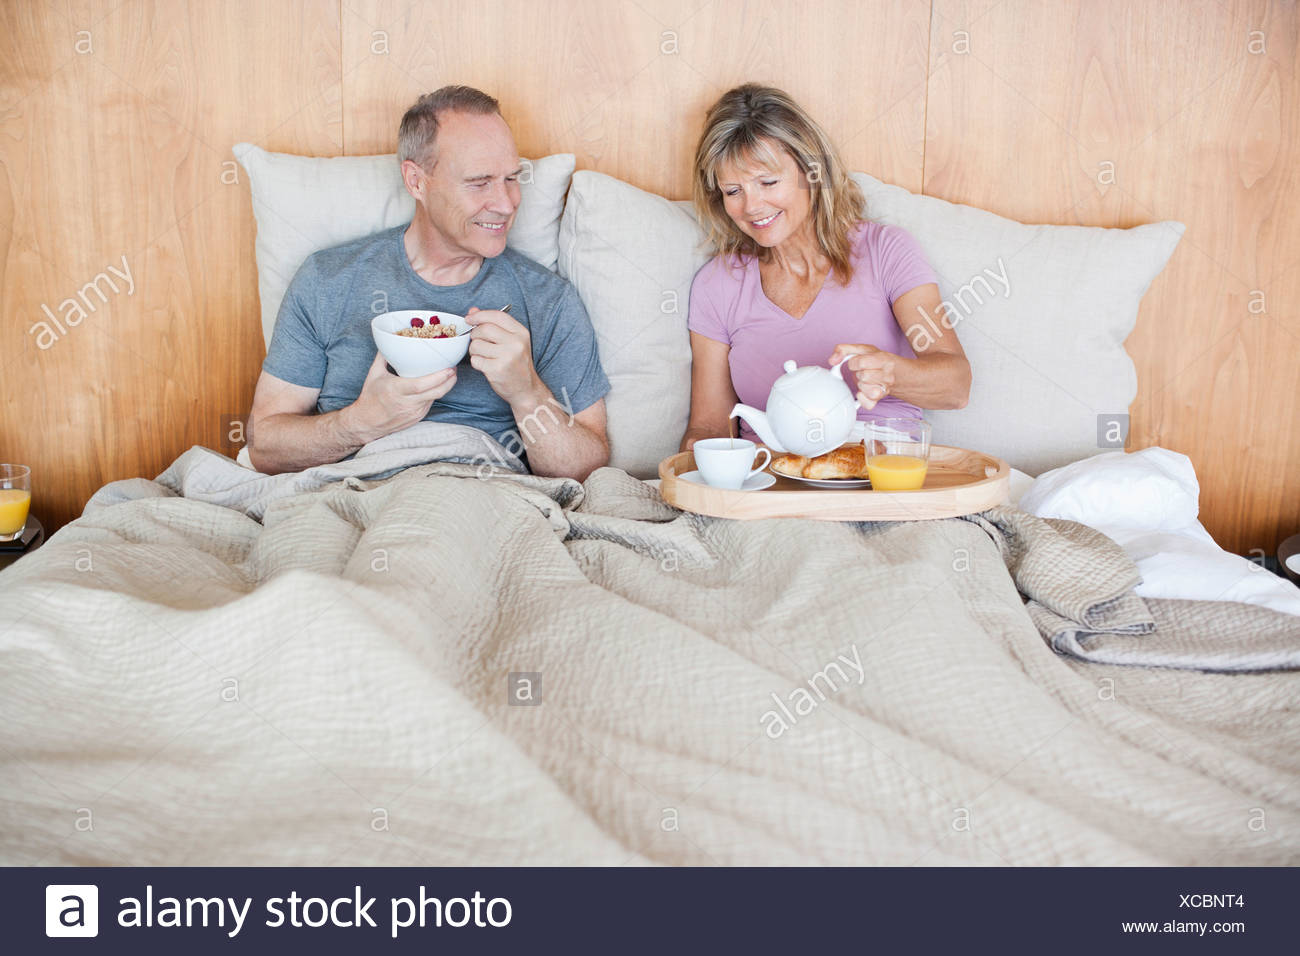 Senior couple eating breakfast in bed Photo Stock